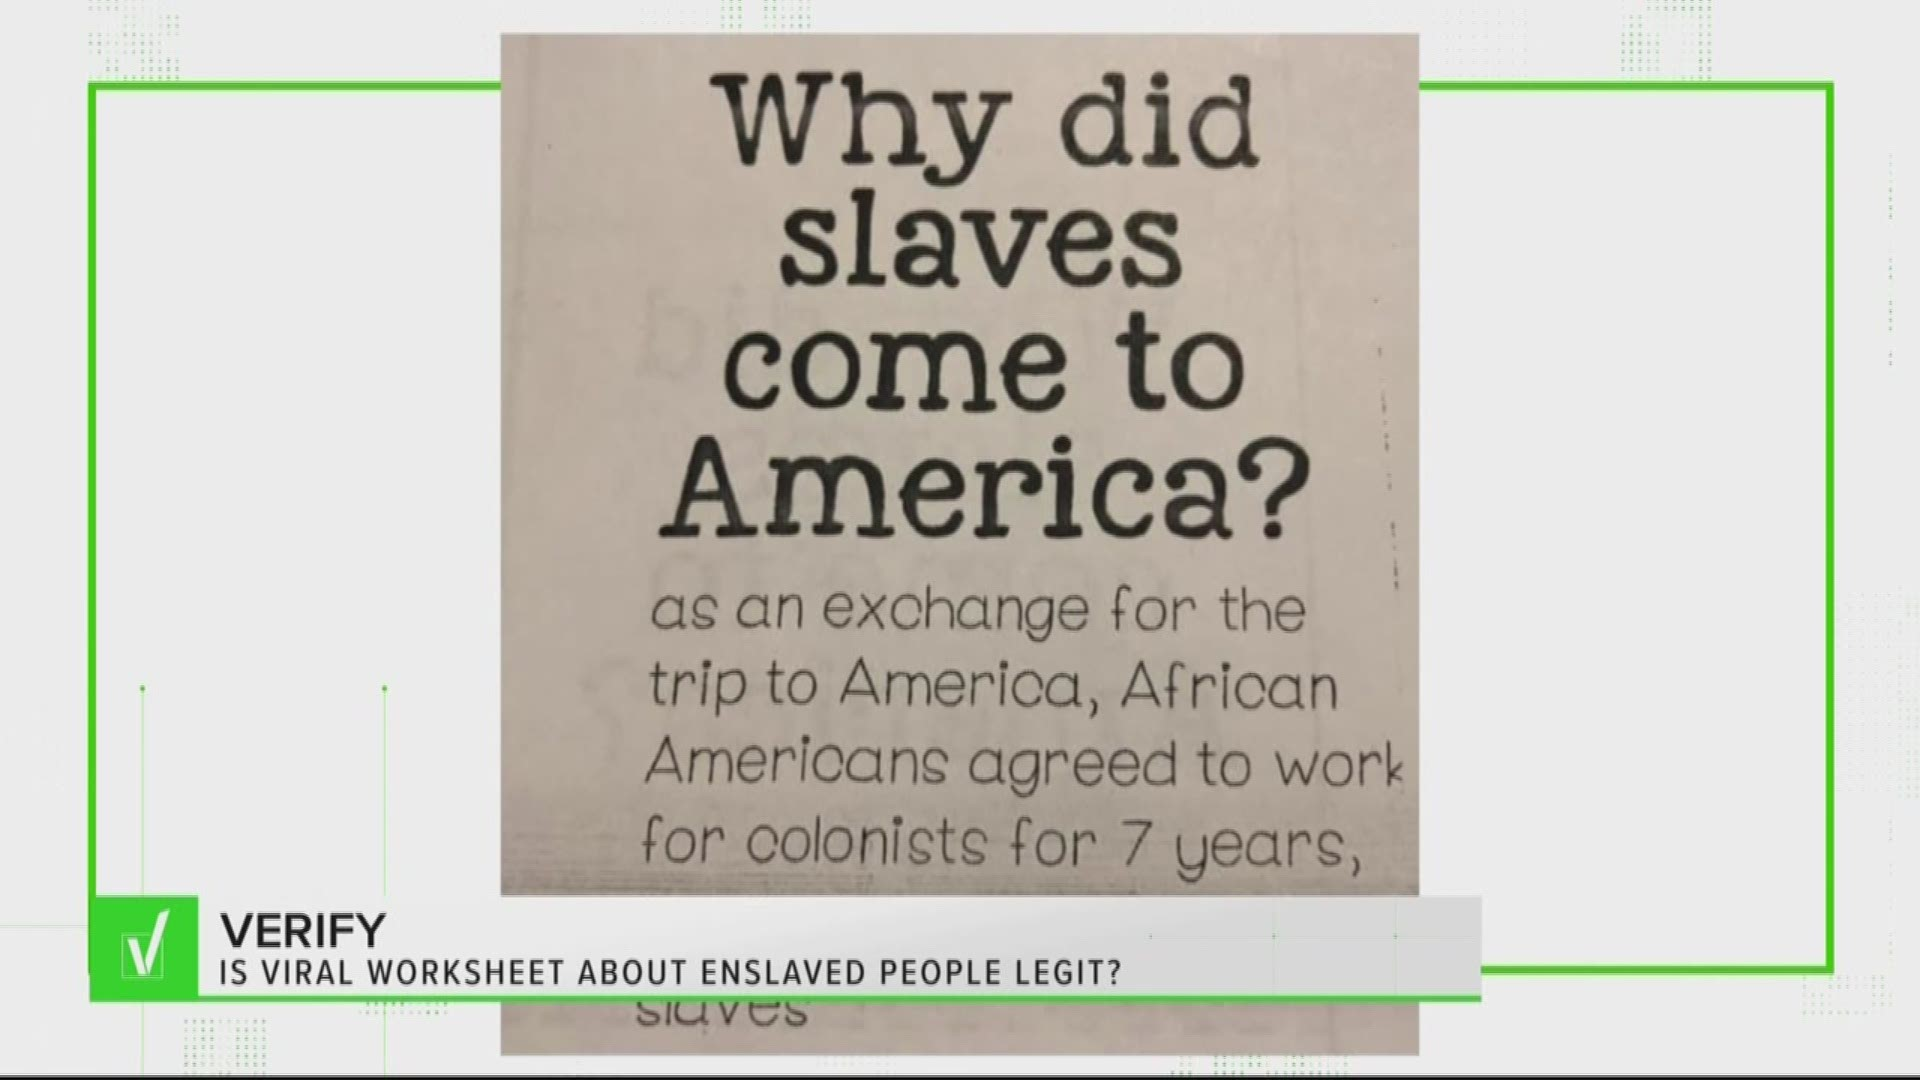 Verify Worksheet On Why Enslaved People Came To America